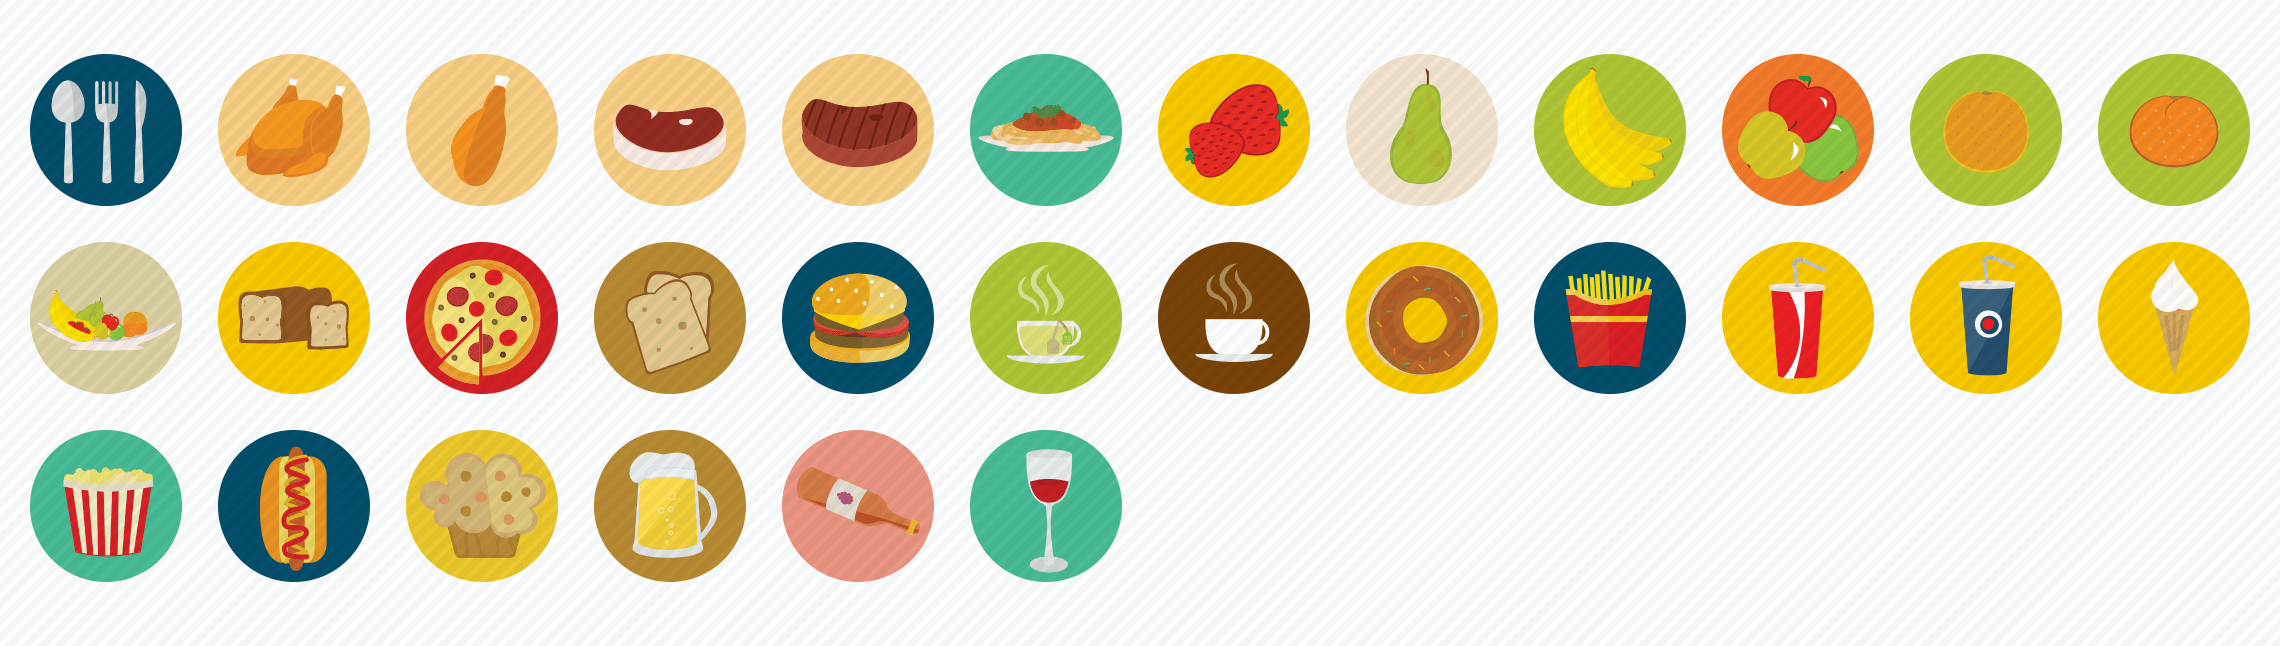 food flat icons set